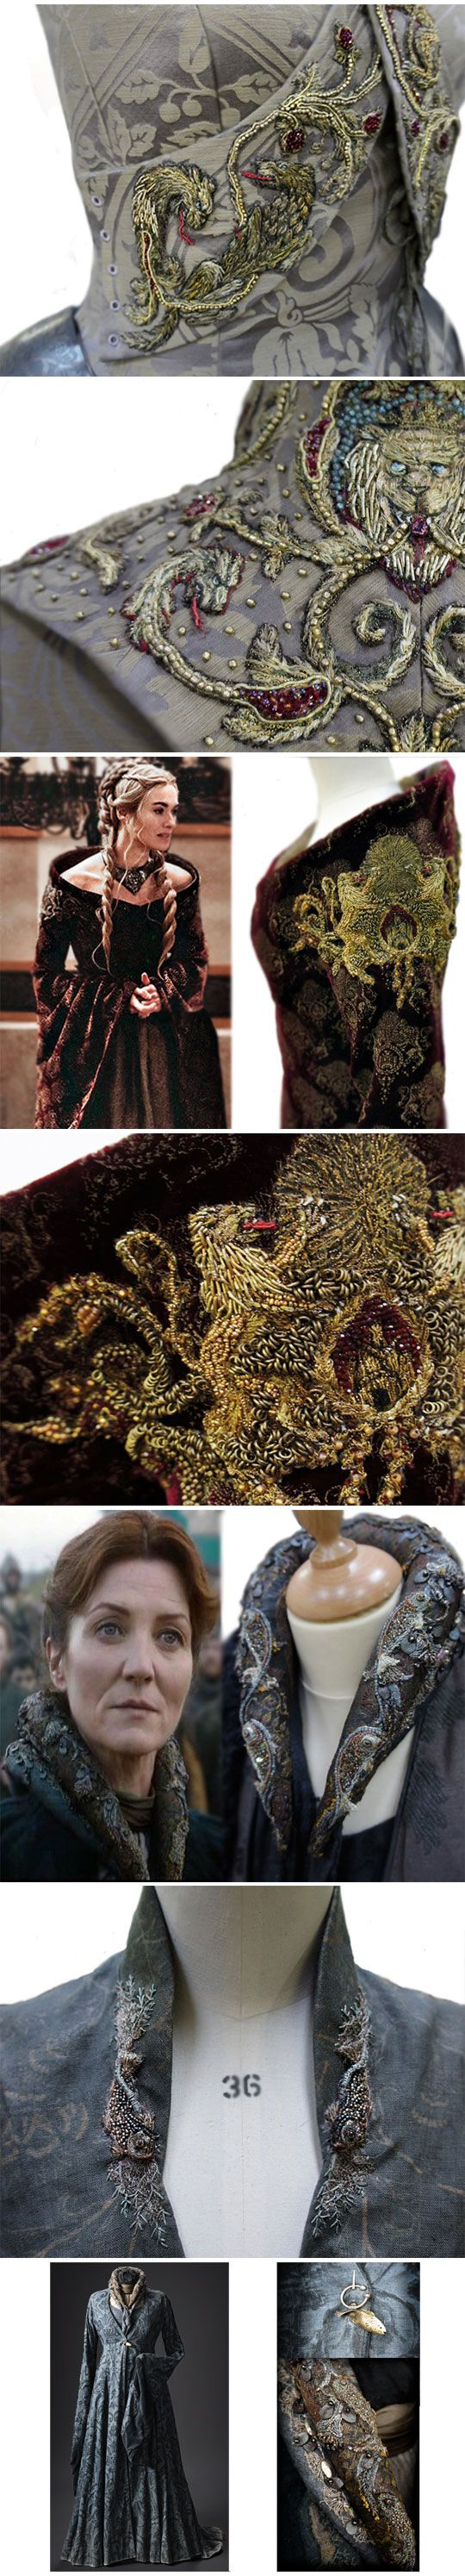 cool-Game-Thrones-costumes-detail-Stark